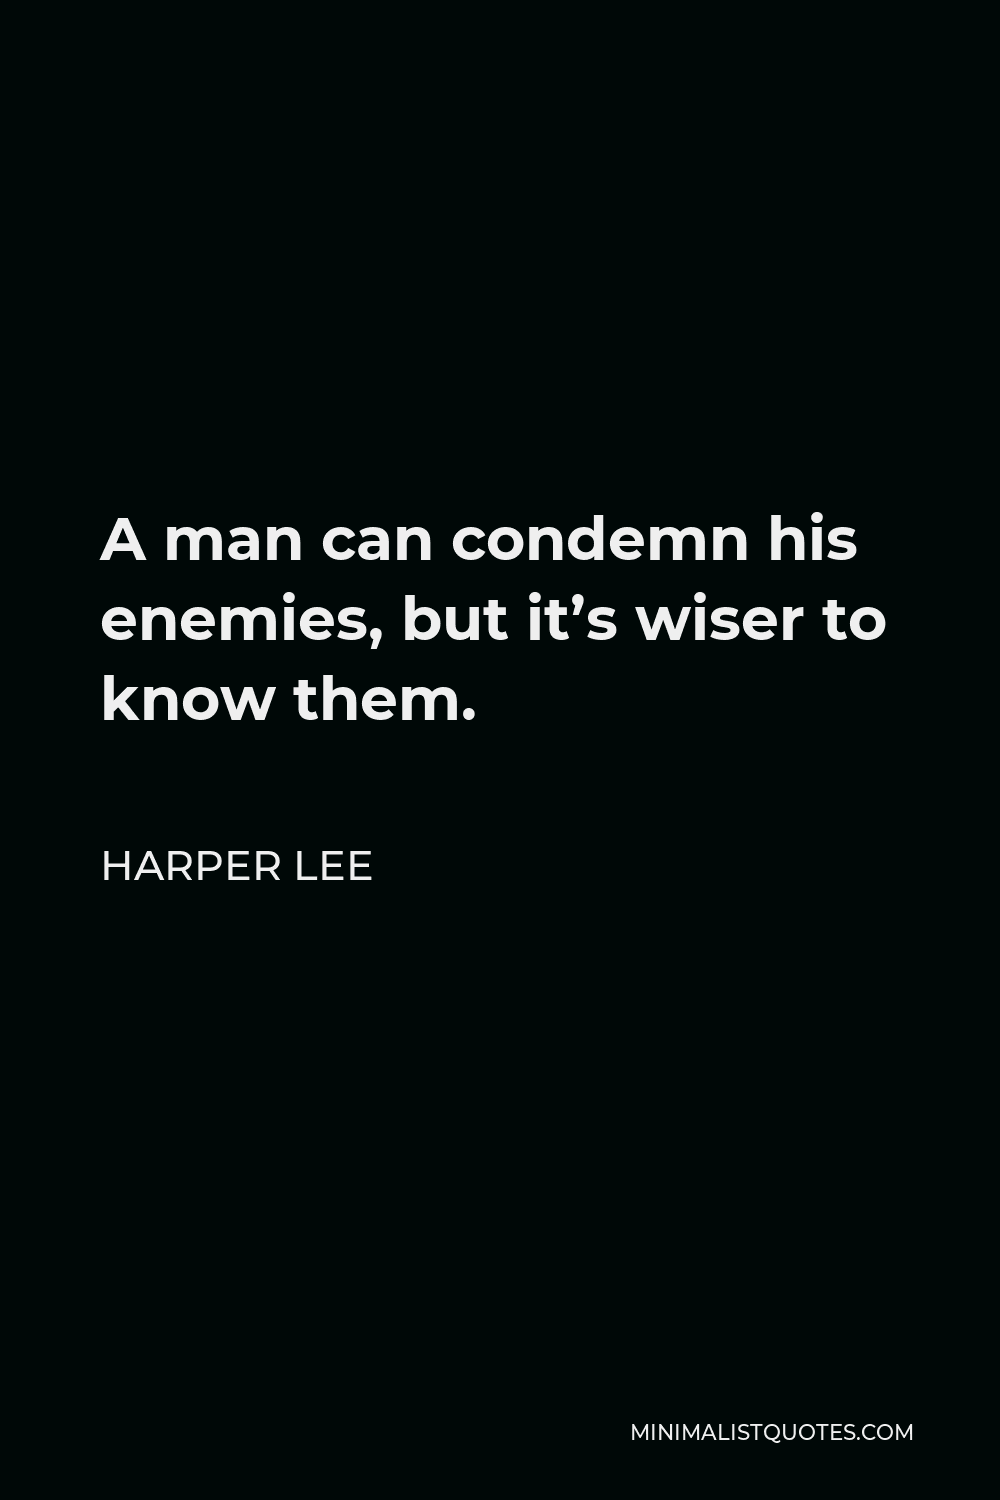 Harper Lee Quote - A man can condemn his enemies, but it's wiser to know them.